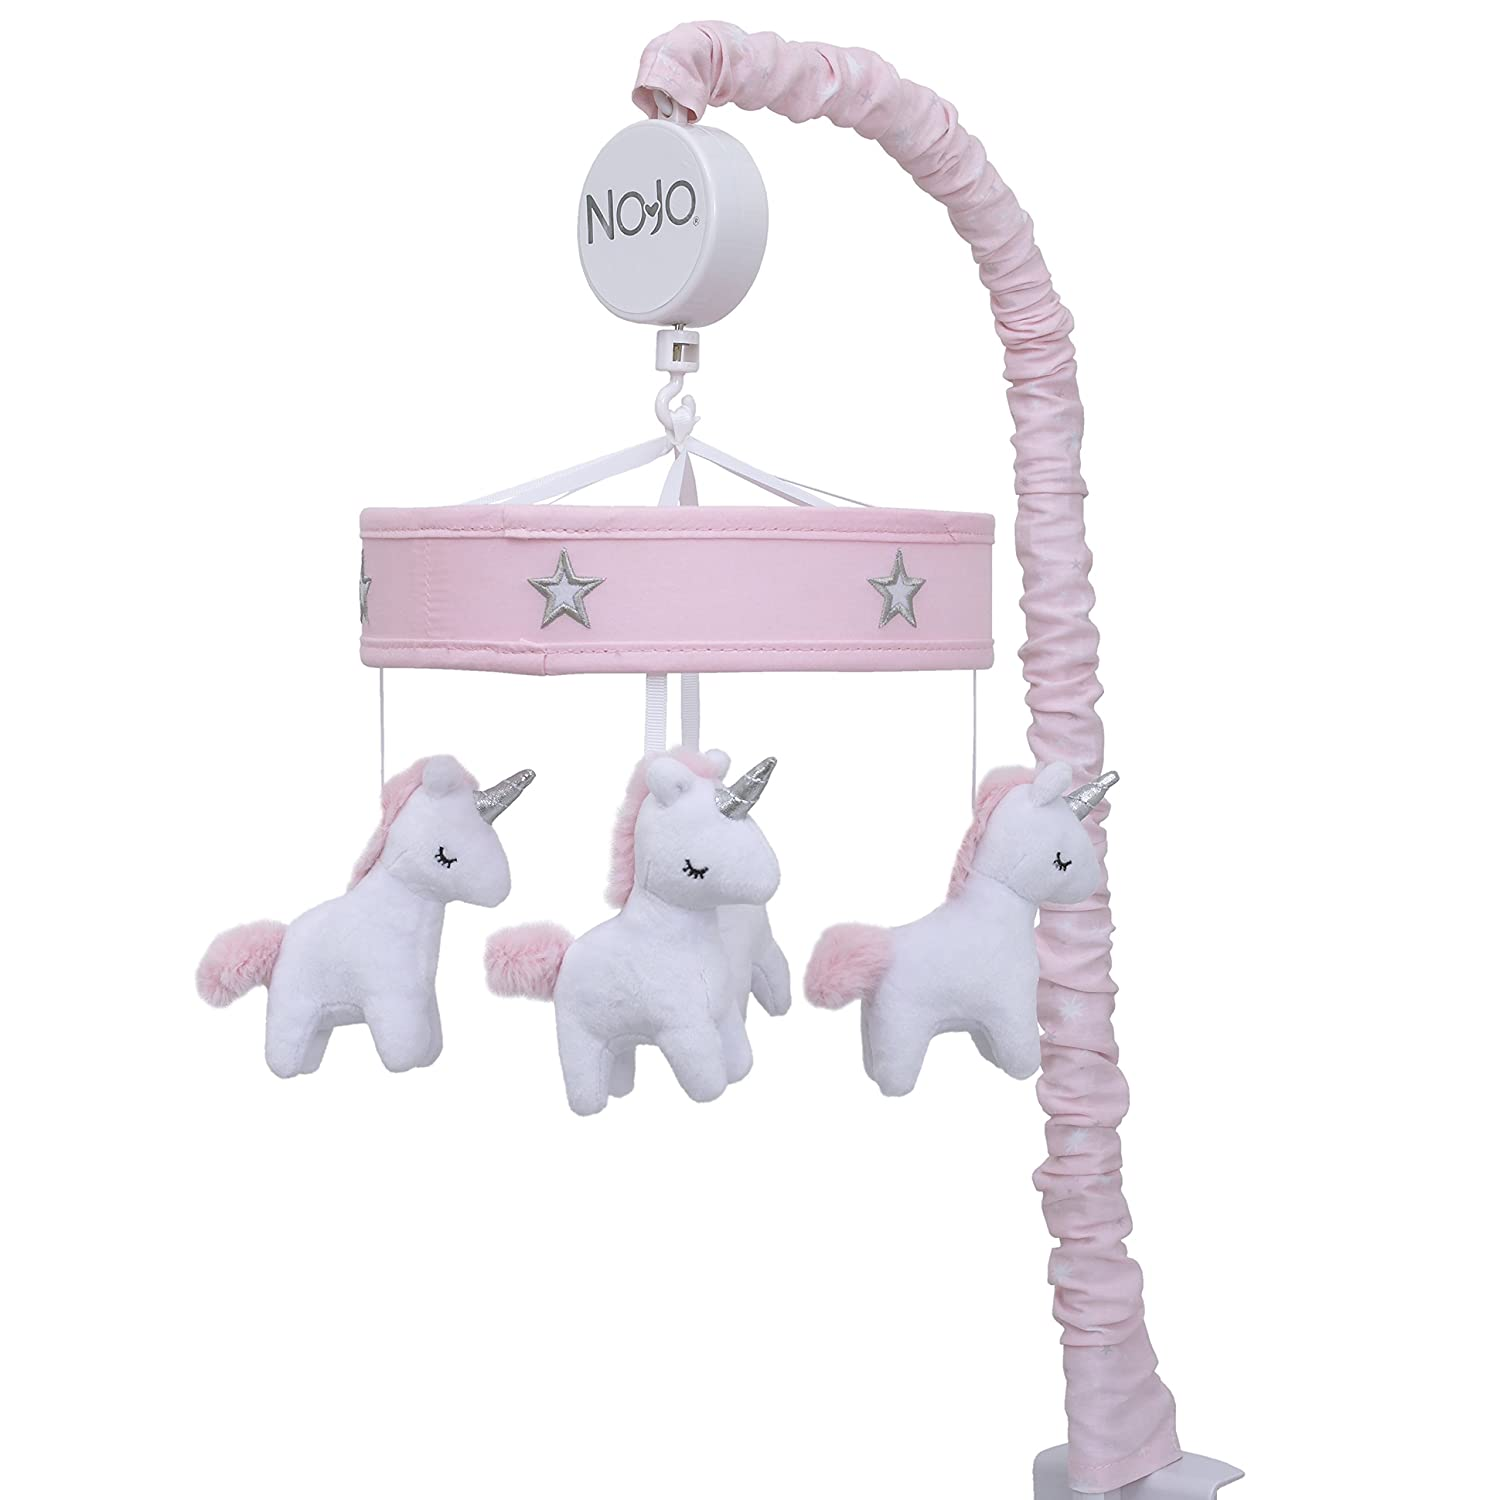 NoJo Unicorn Musical Mobile Crown Crafts Inc 4675079